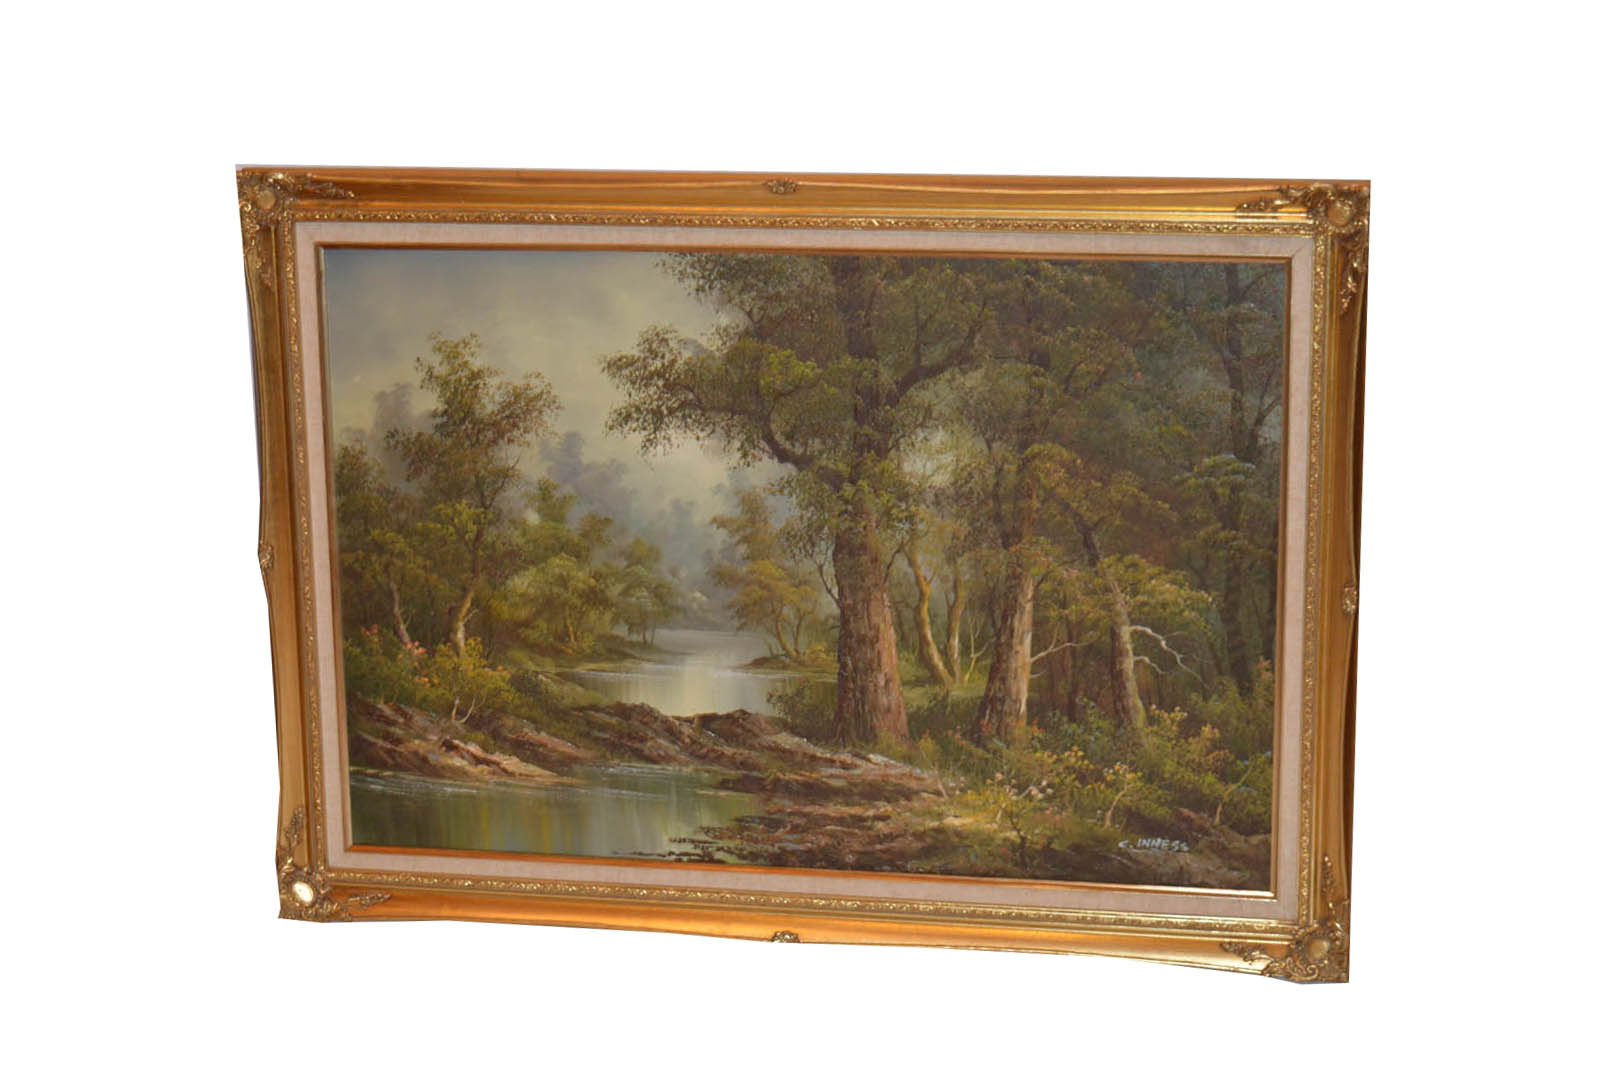 Lot 593 - A Large Oil Painting 'Woodland and River' - C Inness